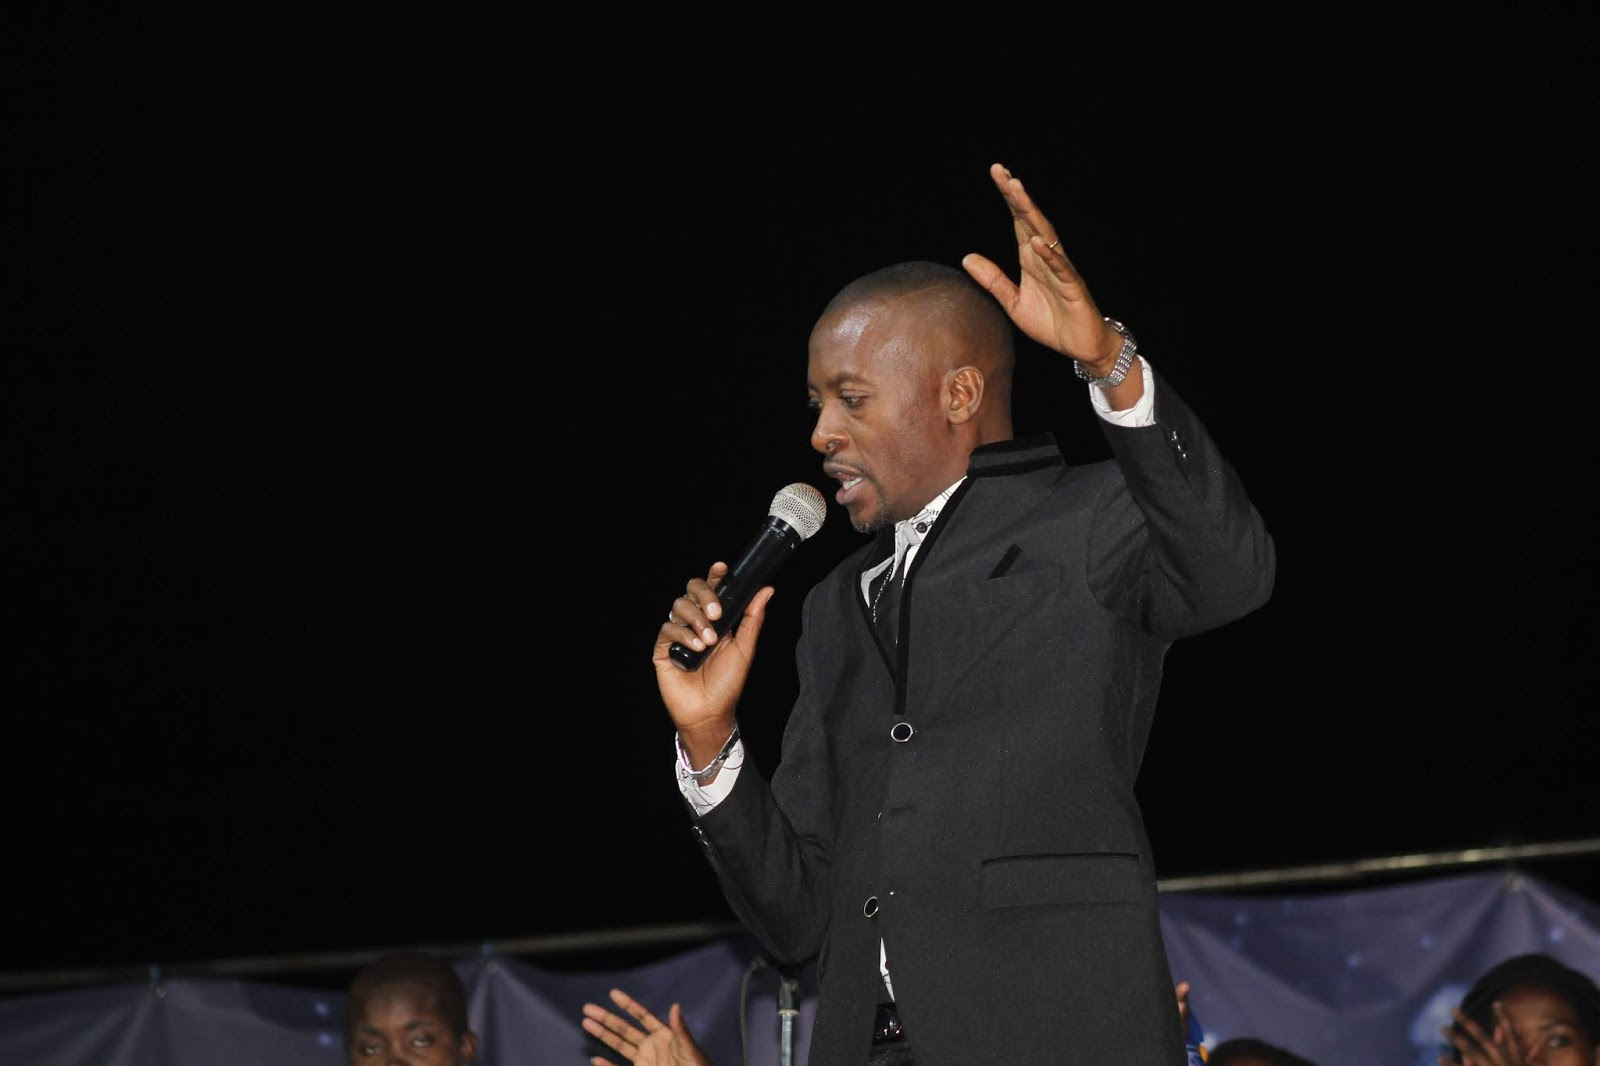 Apostle Pride Sibiya Teaches On How You Can Be Delivered At Tiyambuke 2018